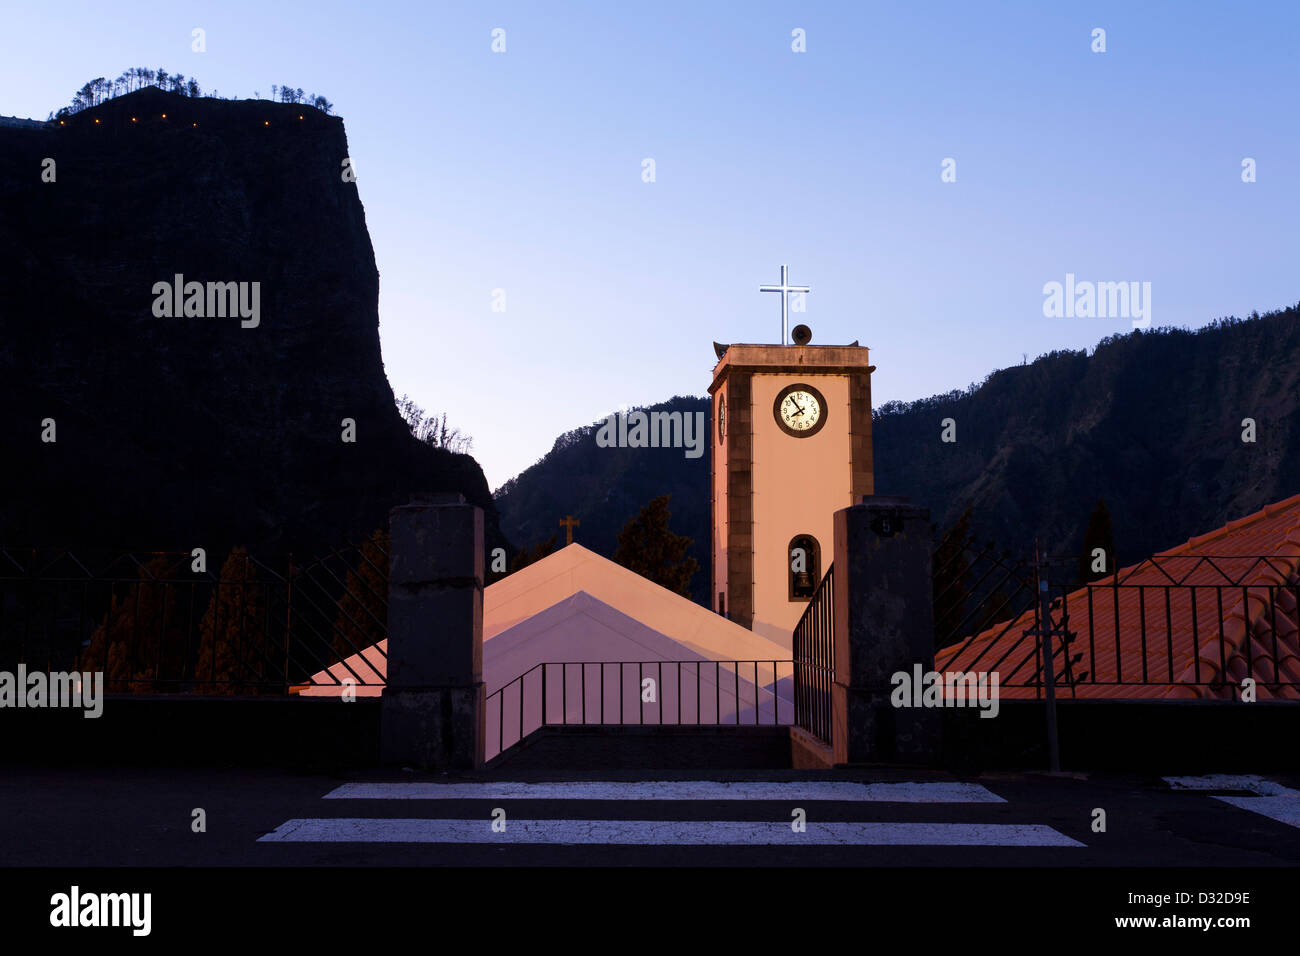 The access from the street to the church in Curral das Freiras. - Stock Image